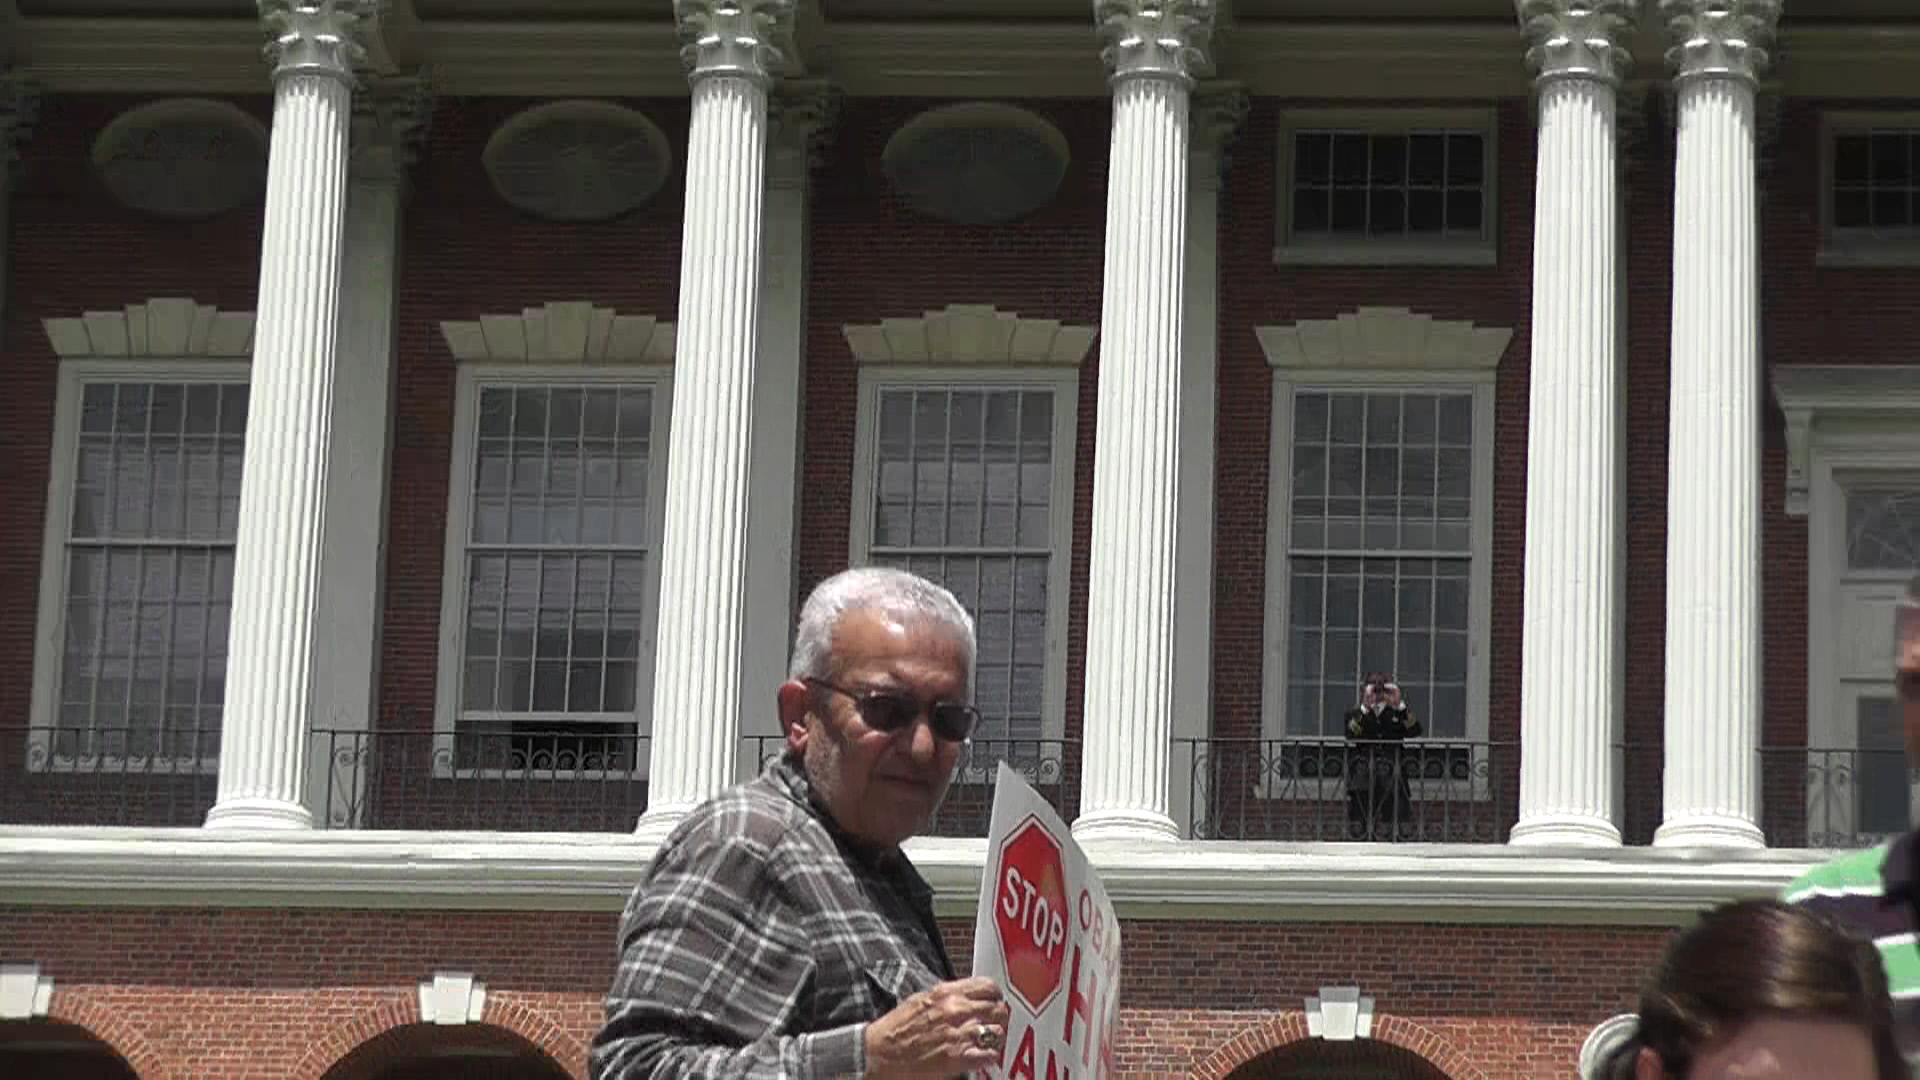 MA State House policeman spies on Stand up for Religious Freedom Rally